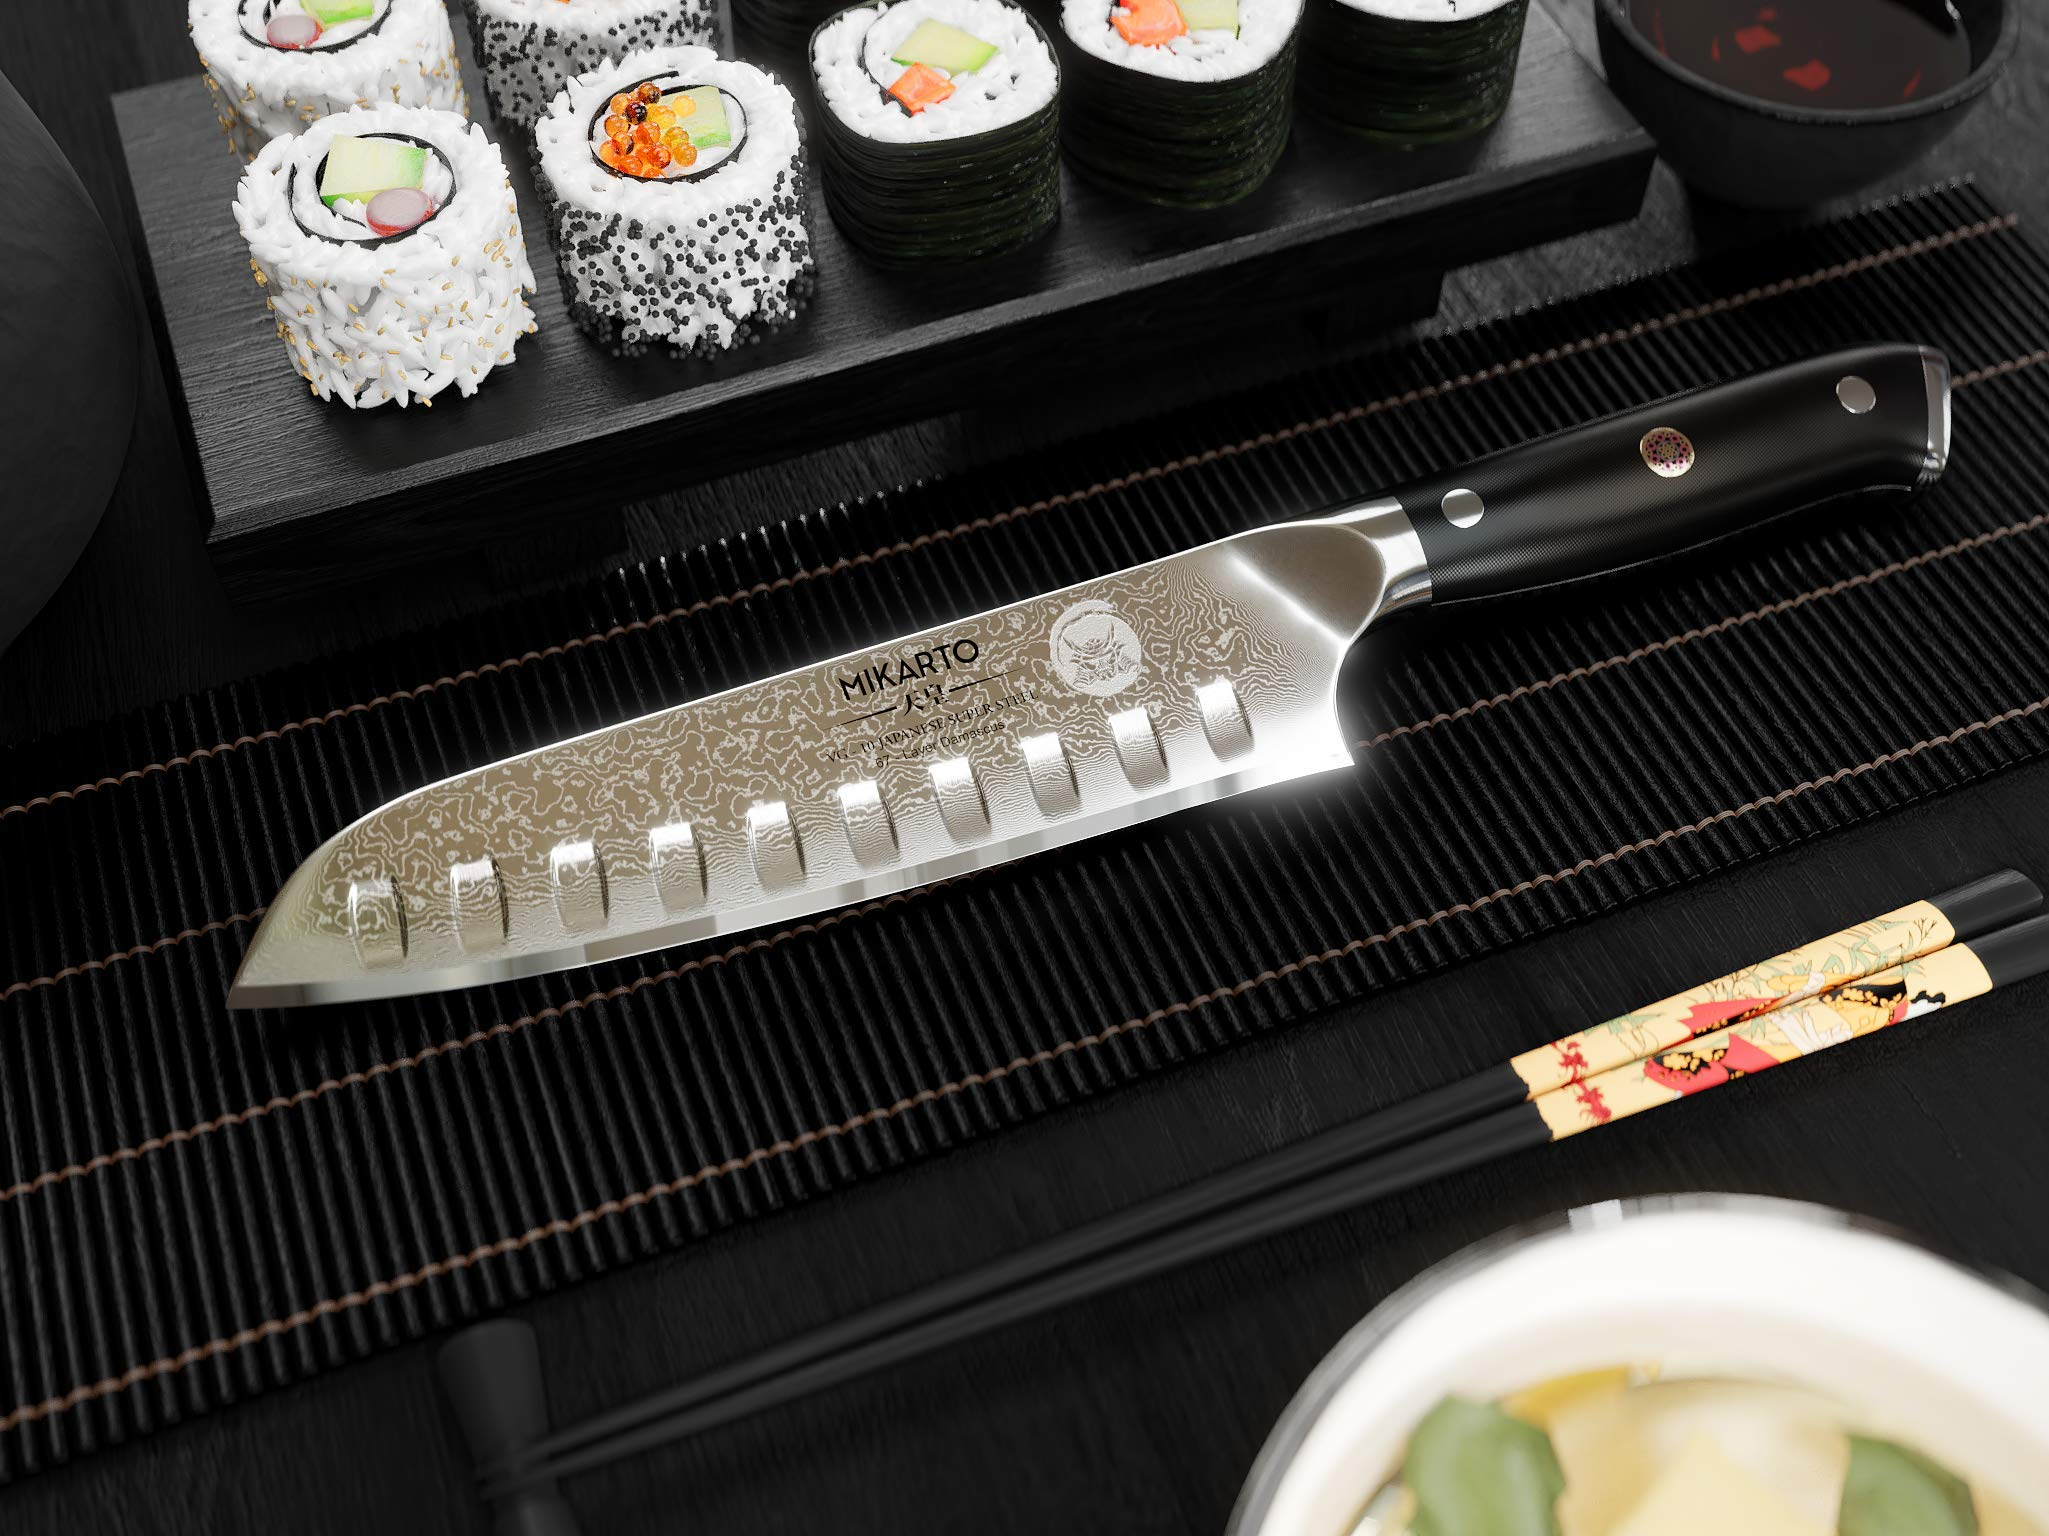 Santoku Japanese Chef Knife, 7 inch, Professional Grade - Damascus Stainless Steel Knife with Tsunami Rose Finish - Ultra Sharp, High Carbon Kitchen Knives - Quality, All Purpose, Precision Cutting by MIKARTO Knife Ware (Image #4)